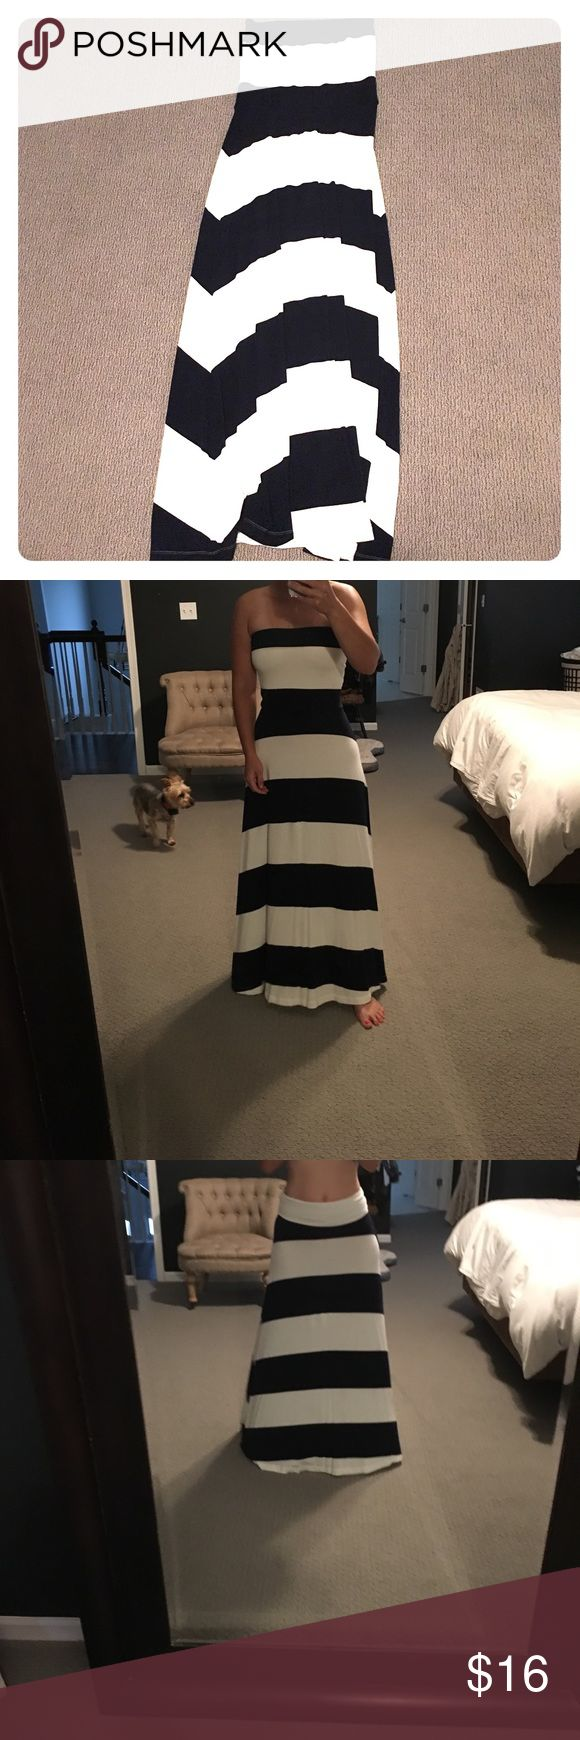 Navy and white striped convertible dress Beautiful nautical navy and white Gap dress. You can wear it as strapless or as a skirt. Size S petite. no stains or damage and only worn a couple times. As a mom of two boys, I no longer do strapless tops🙁 GAP Dresses